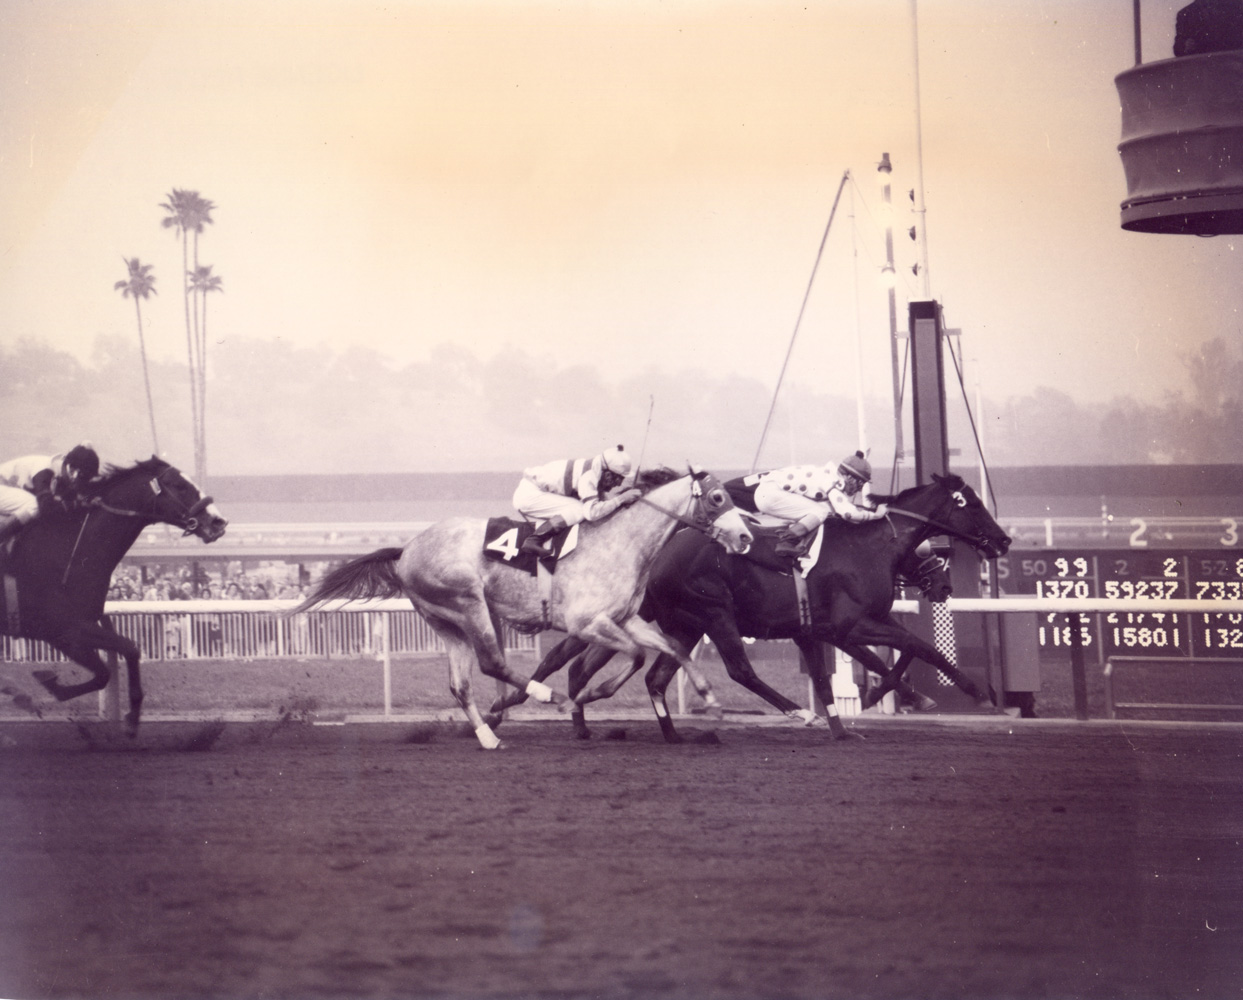 Native Diver (J.erry Lambert up) winning the 1966 San Pasqual Handicap at Santa Anita by a head (Santa Anita Photo/Museum Collection)